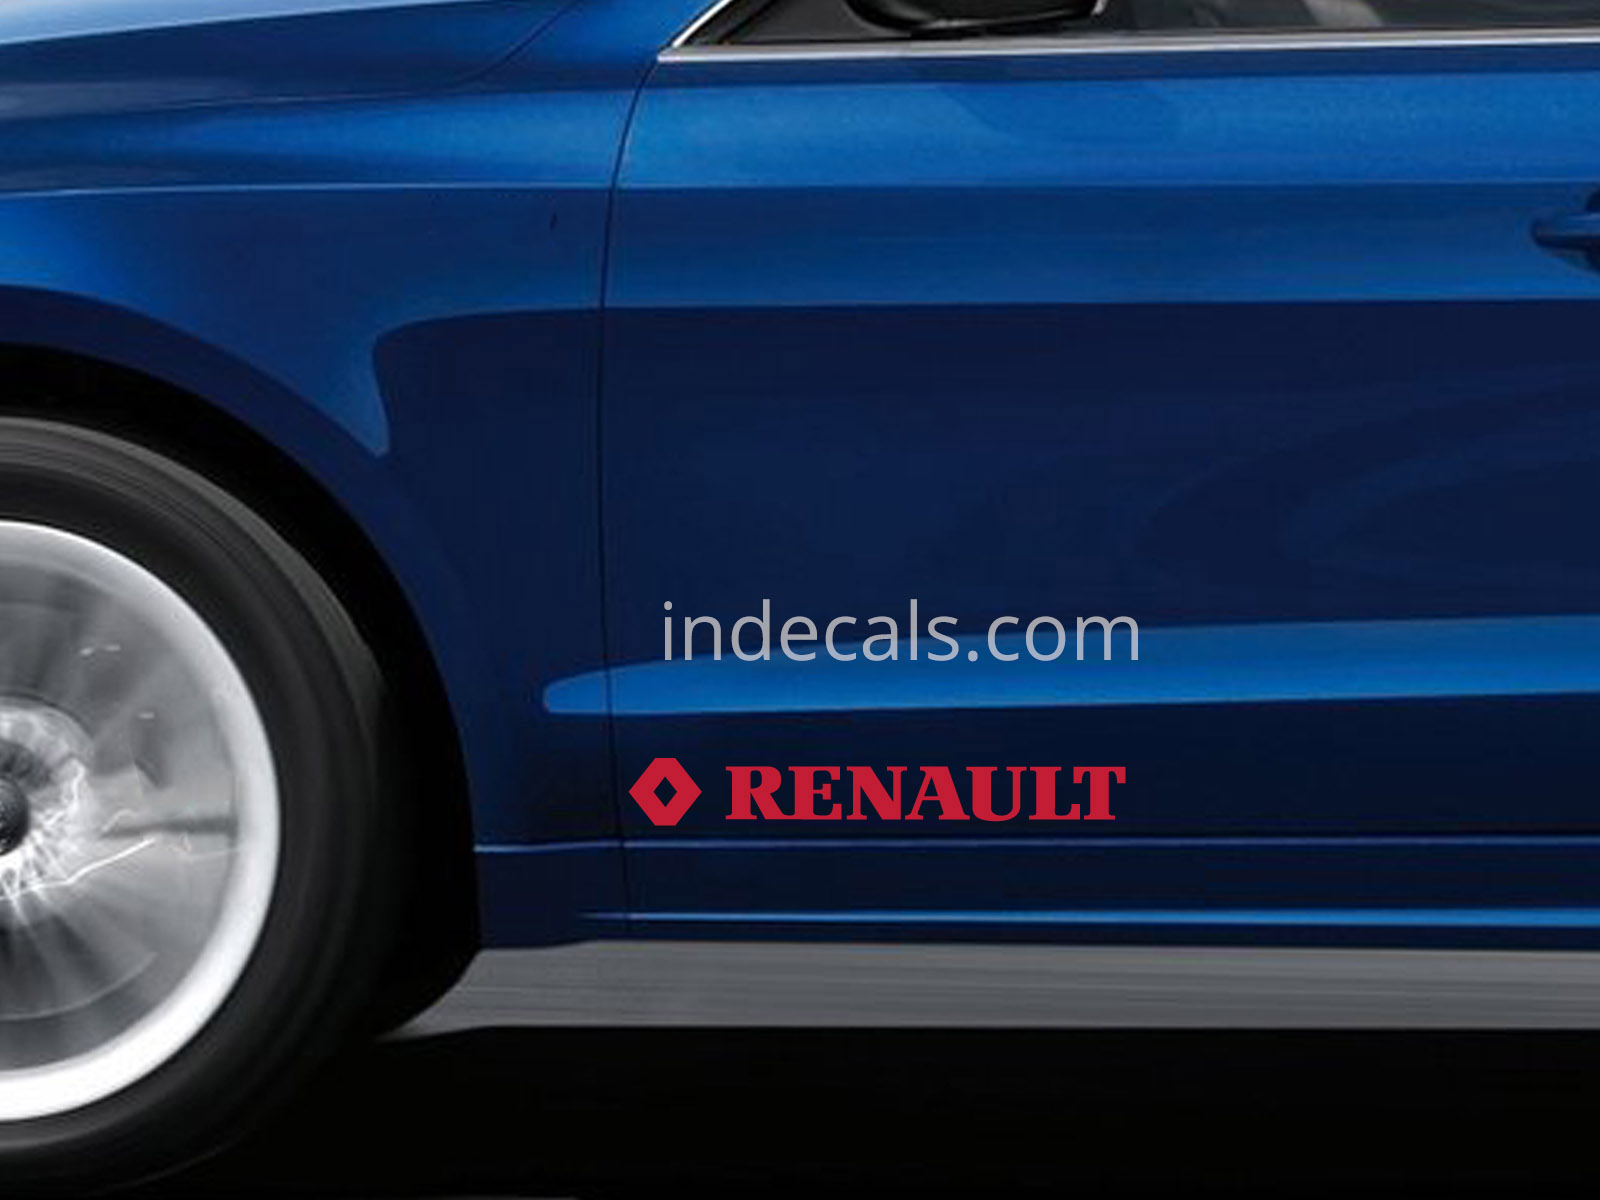 2 x Renault Stickers for Doors Large - Red